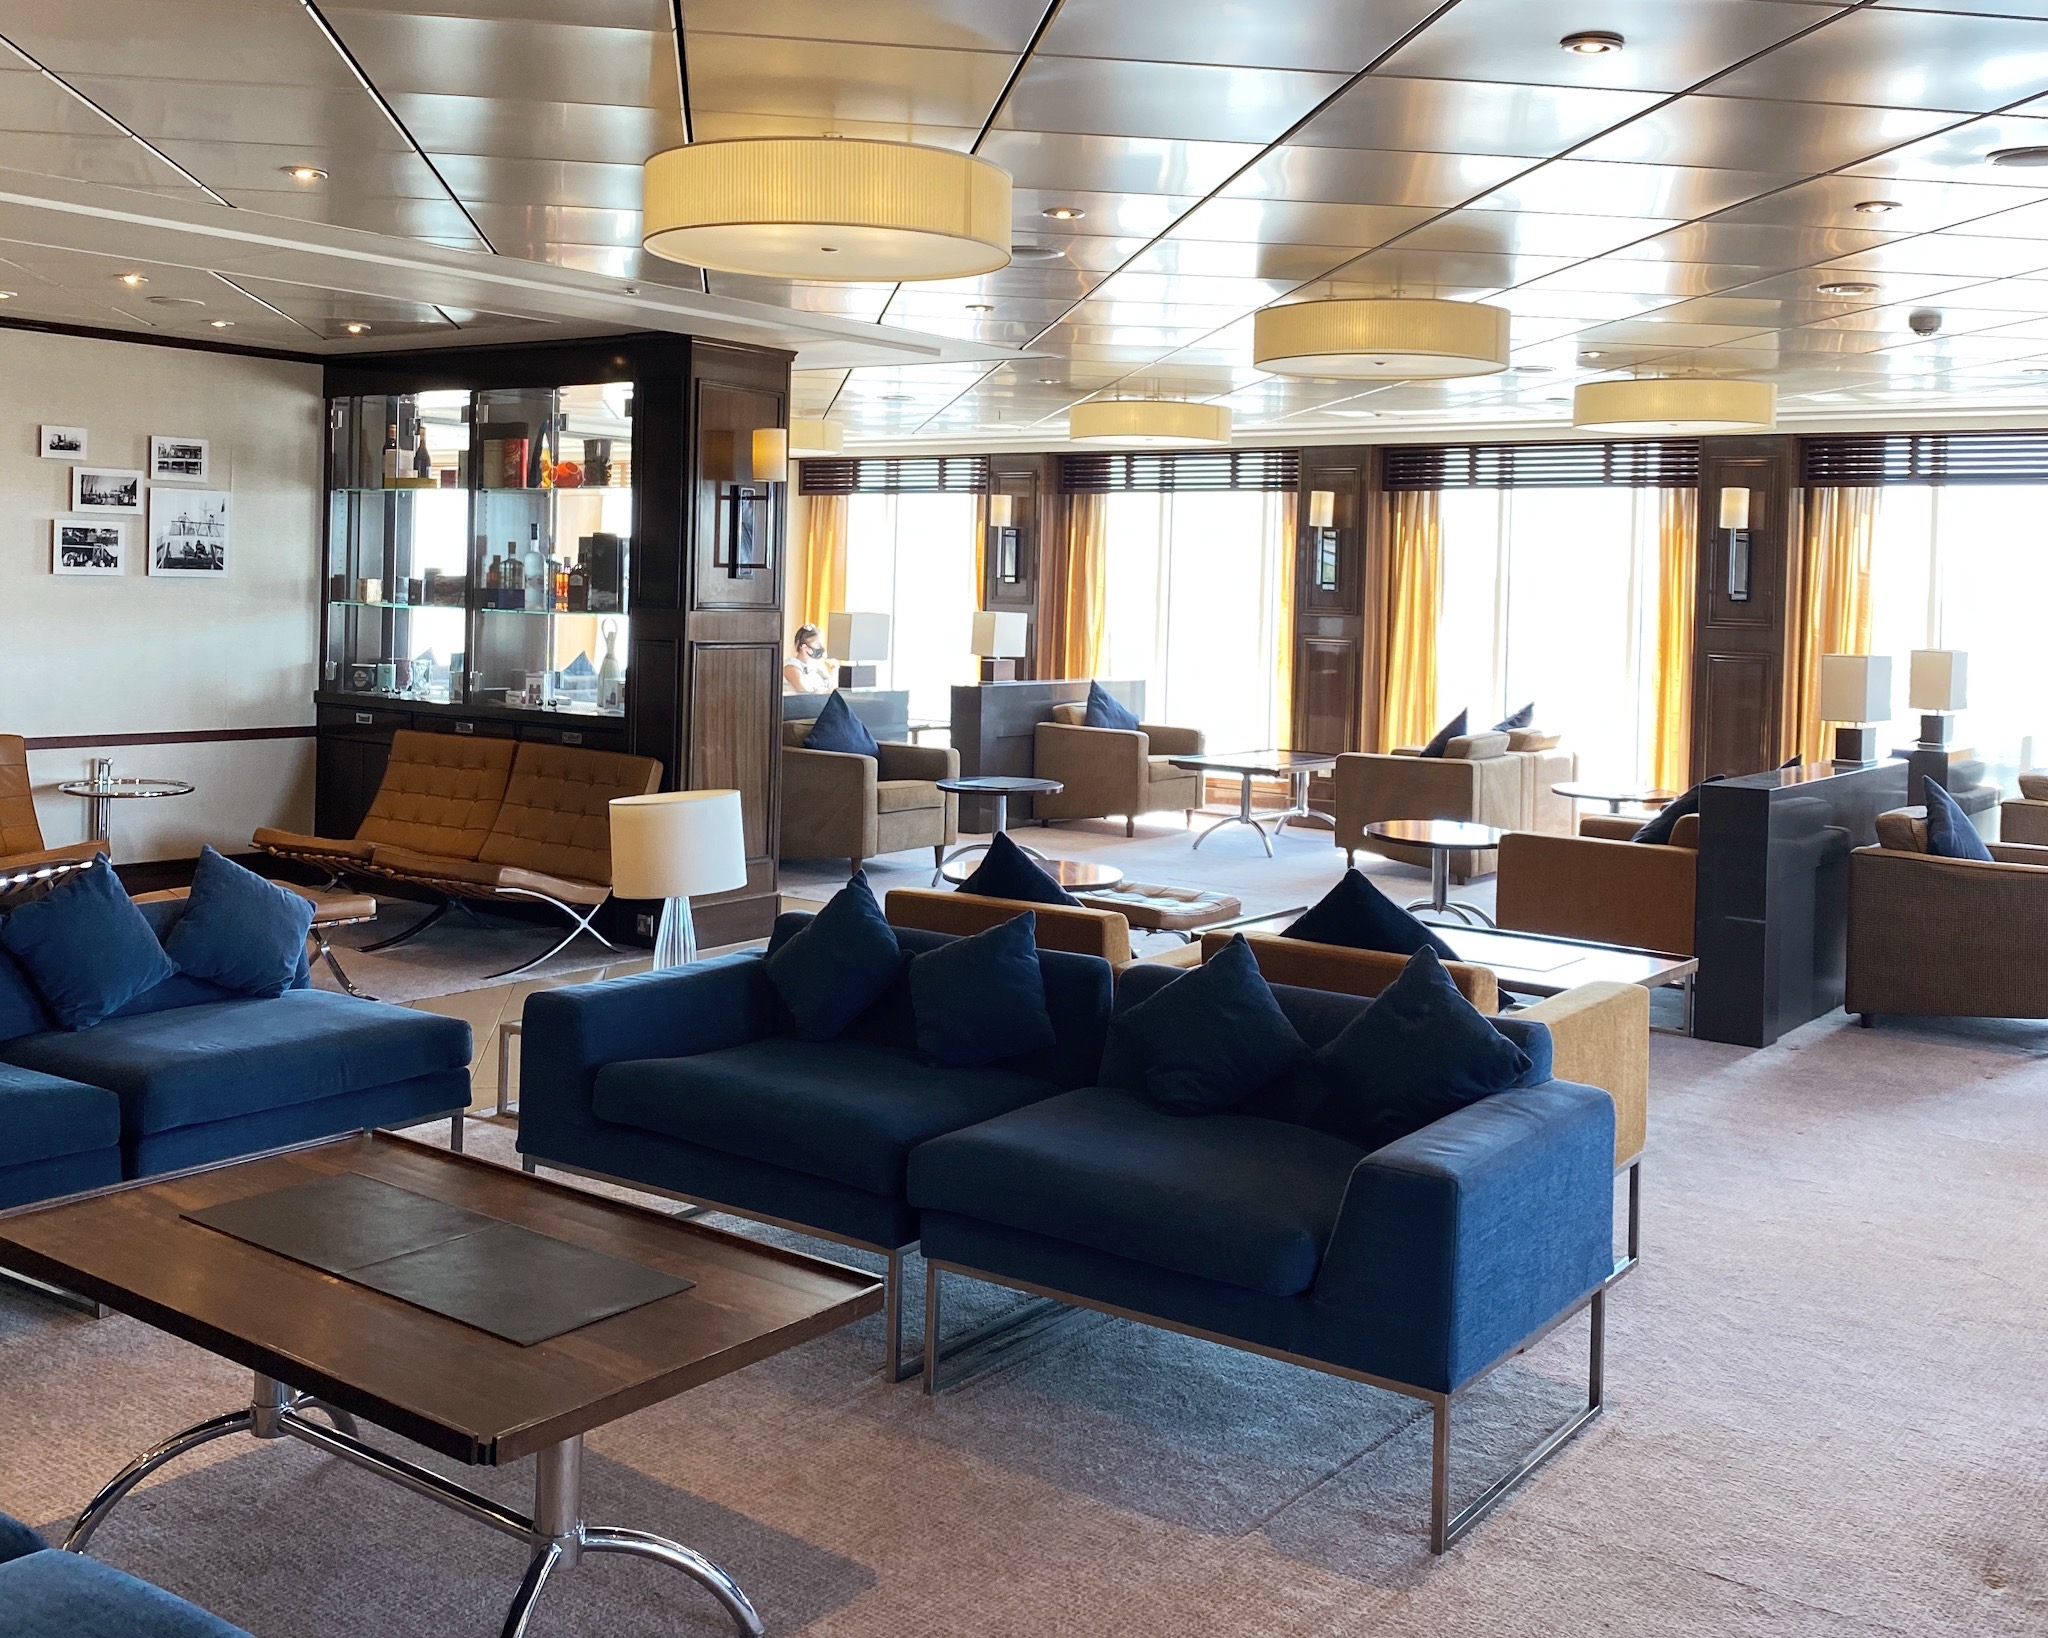 Exploring Europe with P&O Ferries